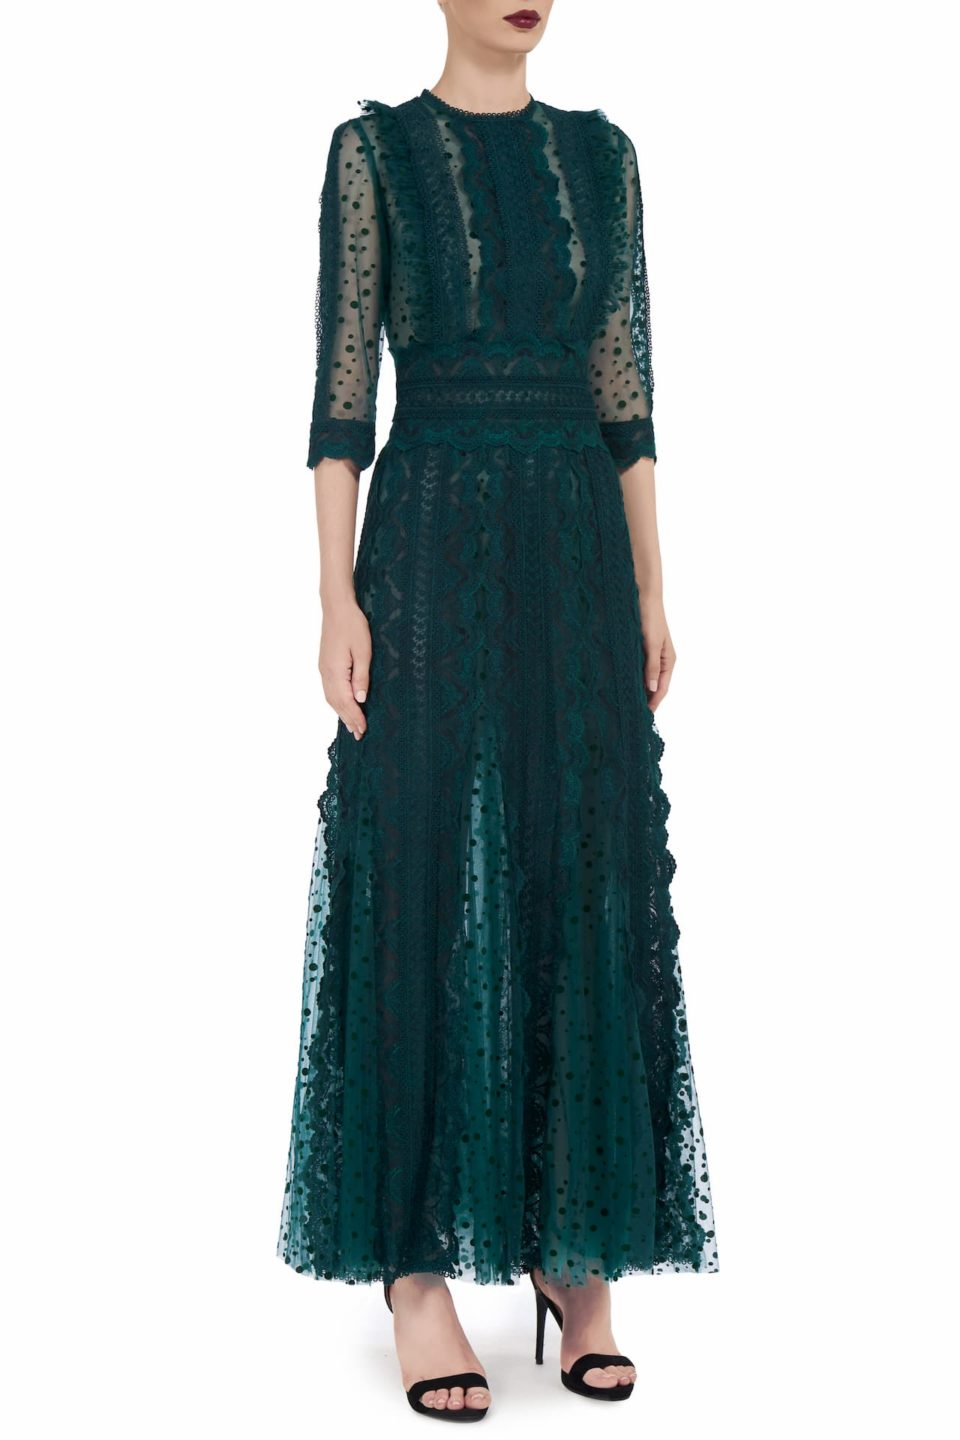 Cade FW2068 green Flocked French Tulle Ruffle Godet Dress with Embroidered & Guipure Lace